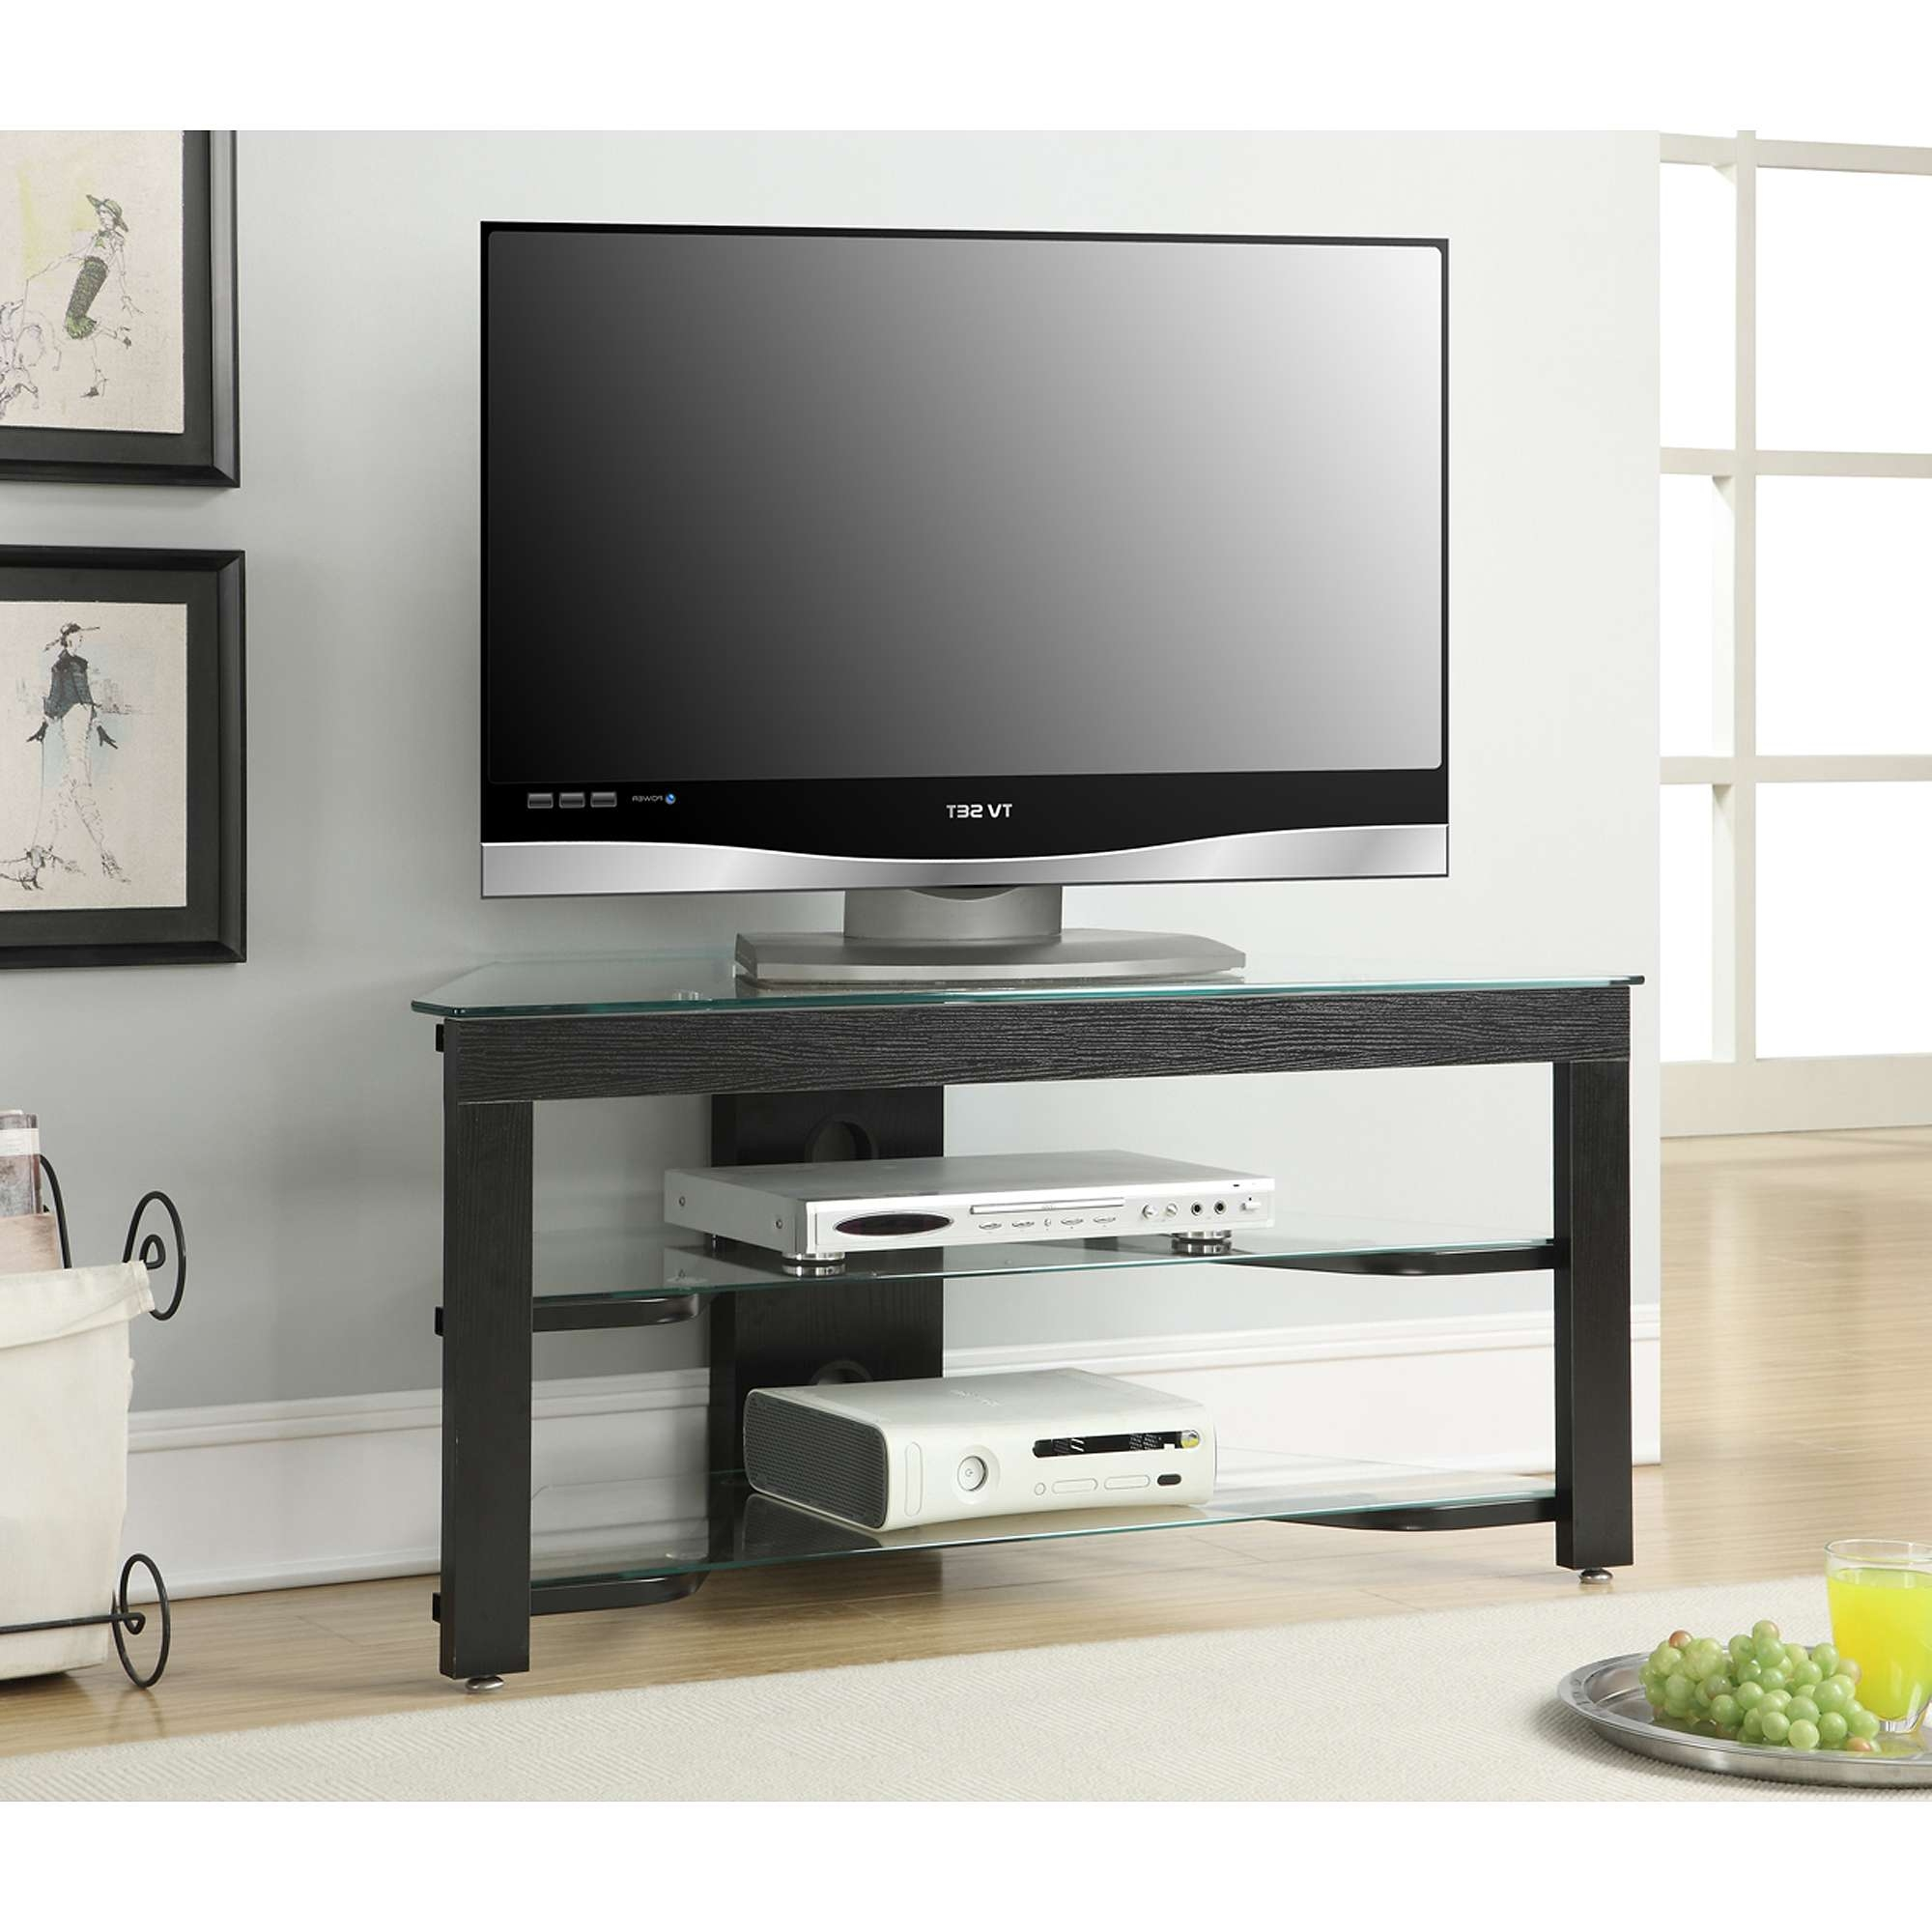 Tv Stand With Rounded Corners – Round Designs Throughout Tv Stands With Rounded Corners (View 11 of 15)